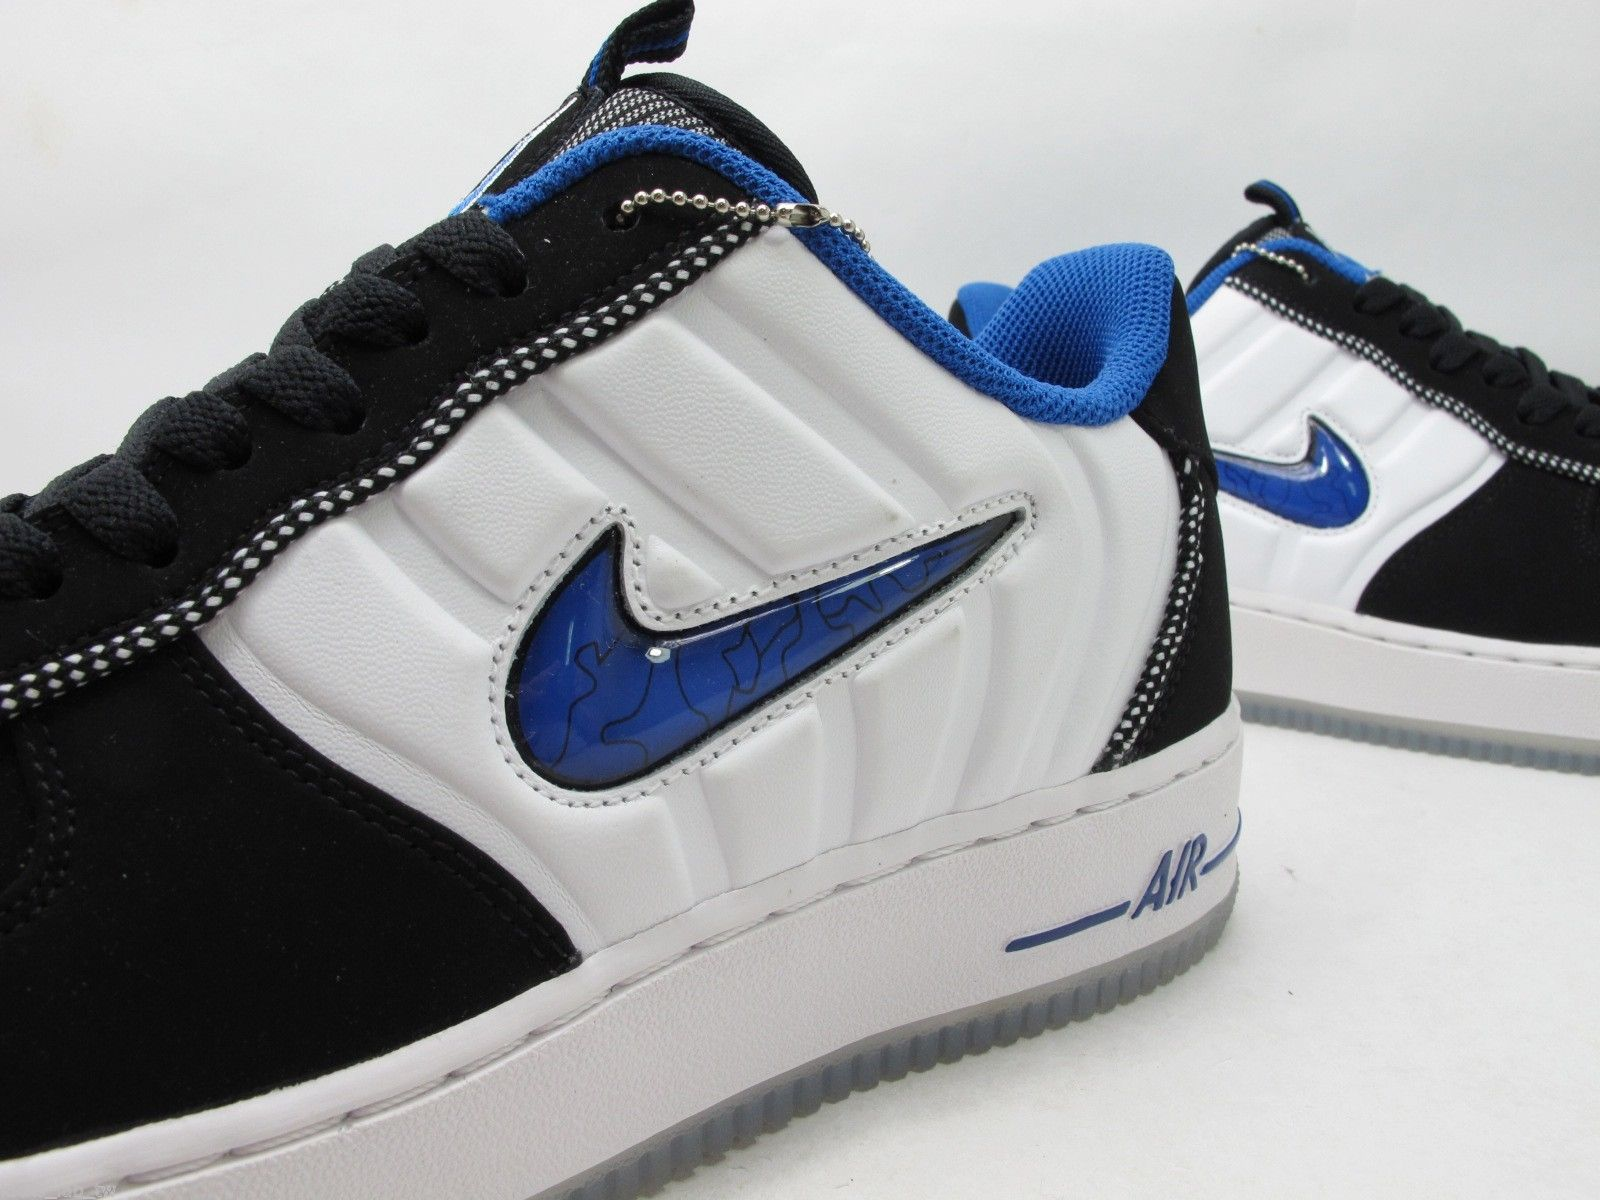 6f682152e3 Stay tuned to Sole Collector for further details on the 'Penny Hardaway' Nike  Air Force 1 Low CMFT.